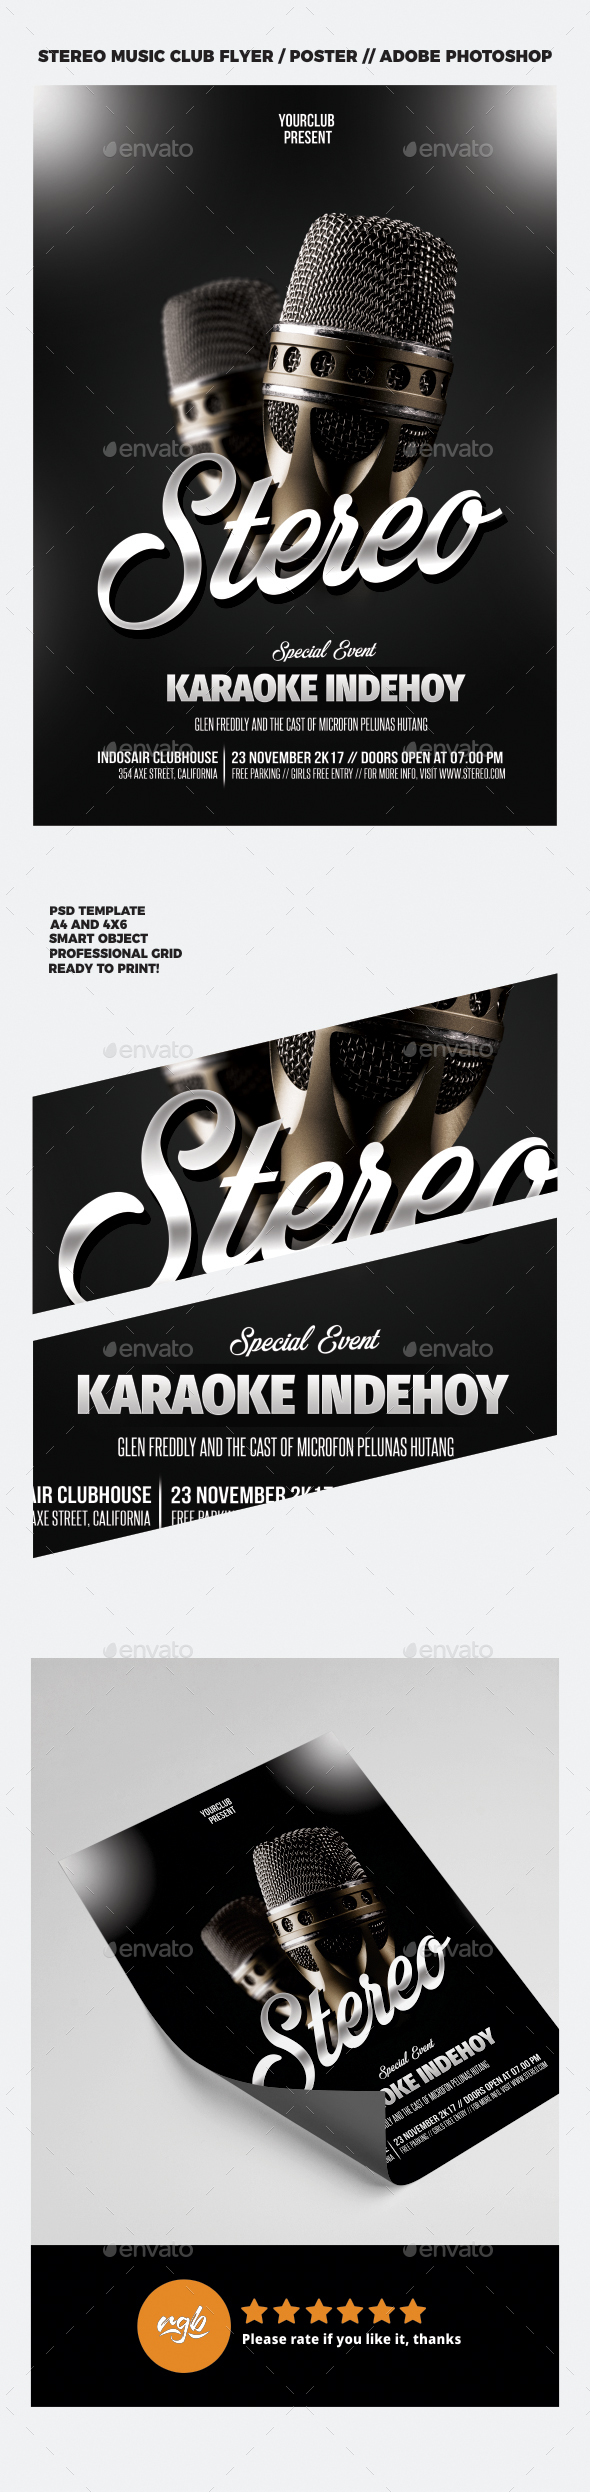 Stereo Music Club Flyer / Poster - Clubs & Parties Events